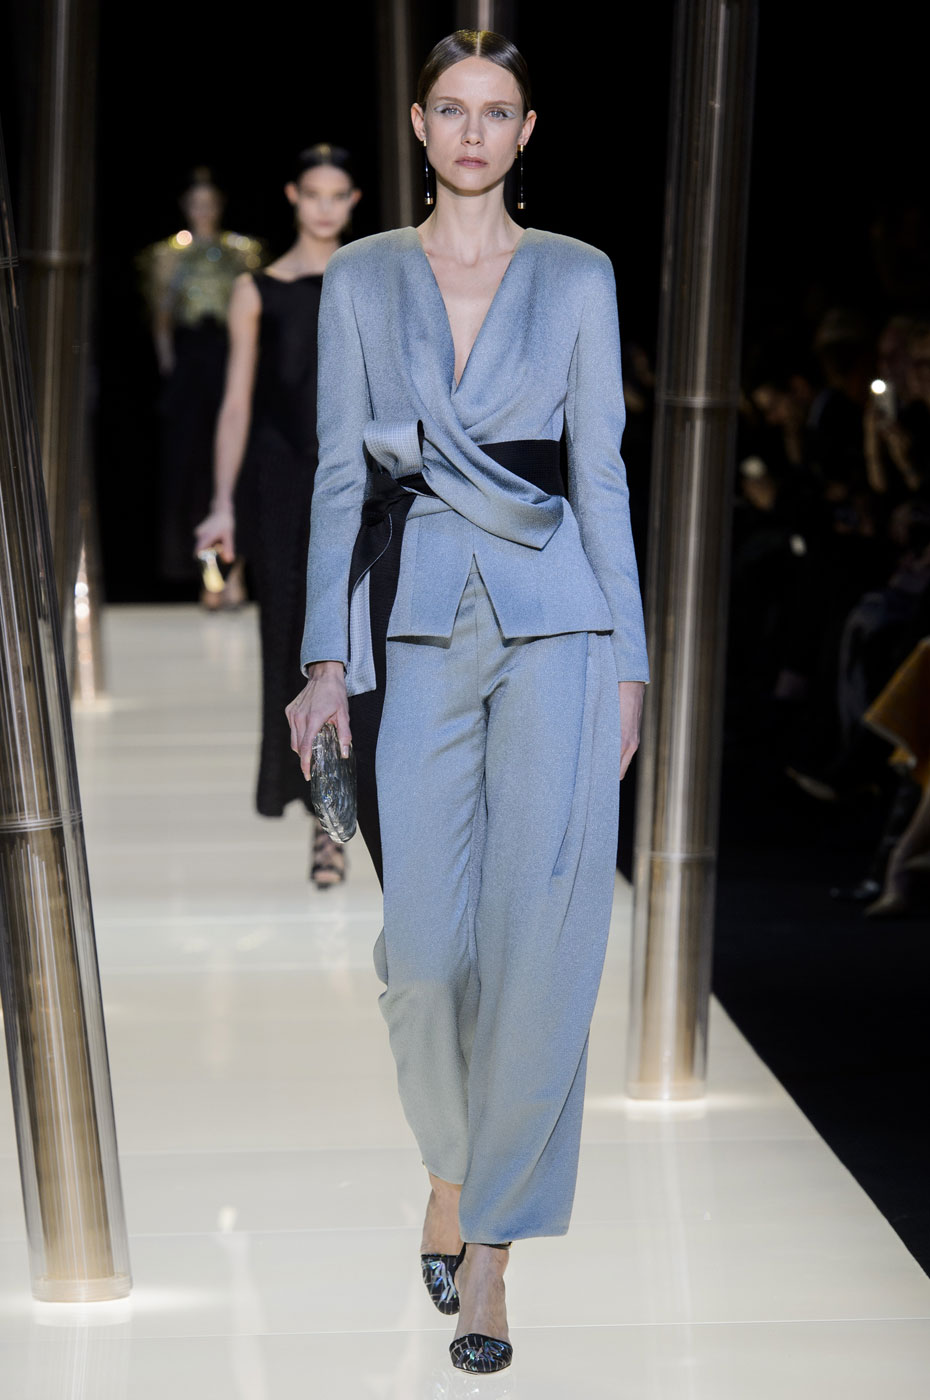 Giorgio-armani-Prive-fashion-runway-show-haute-couture-paris-spring-2015-the-impression-051